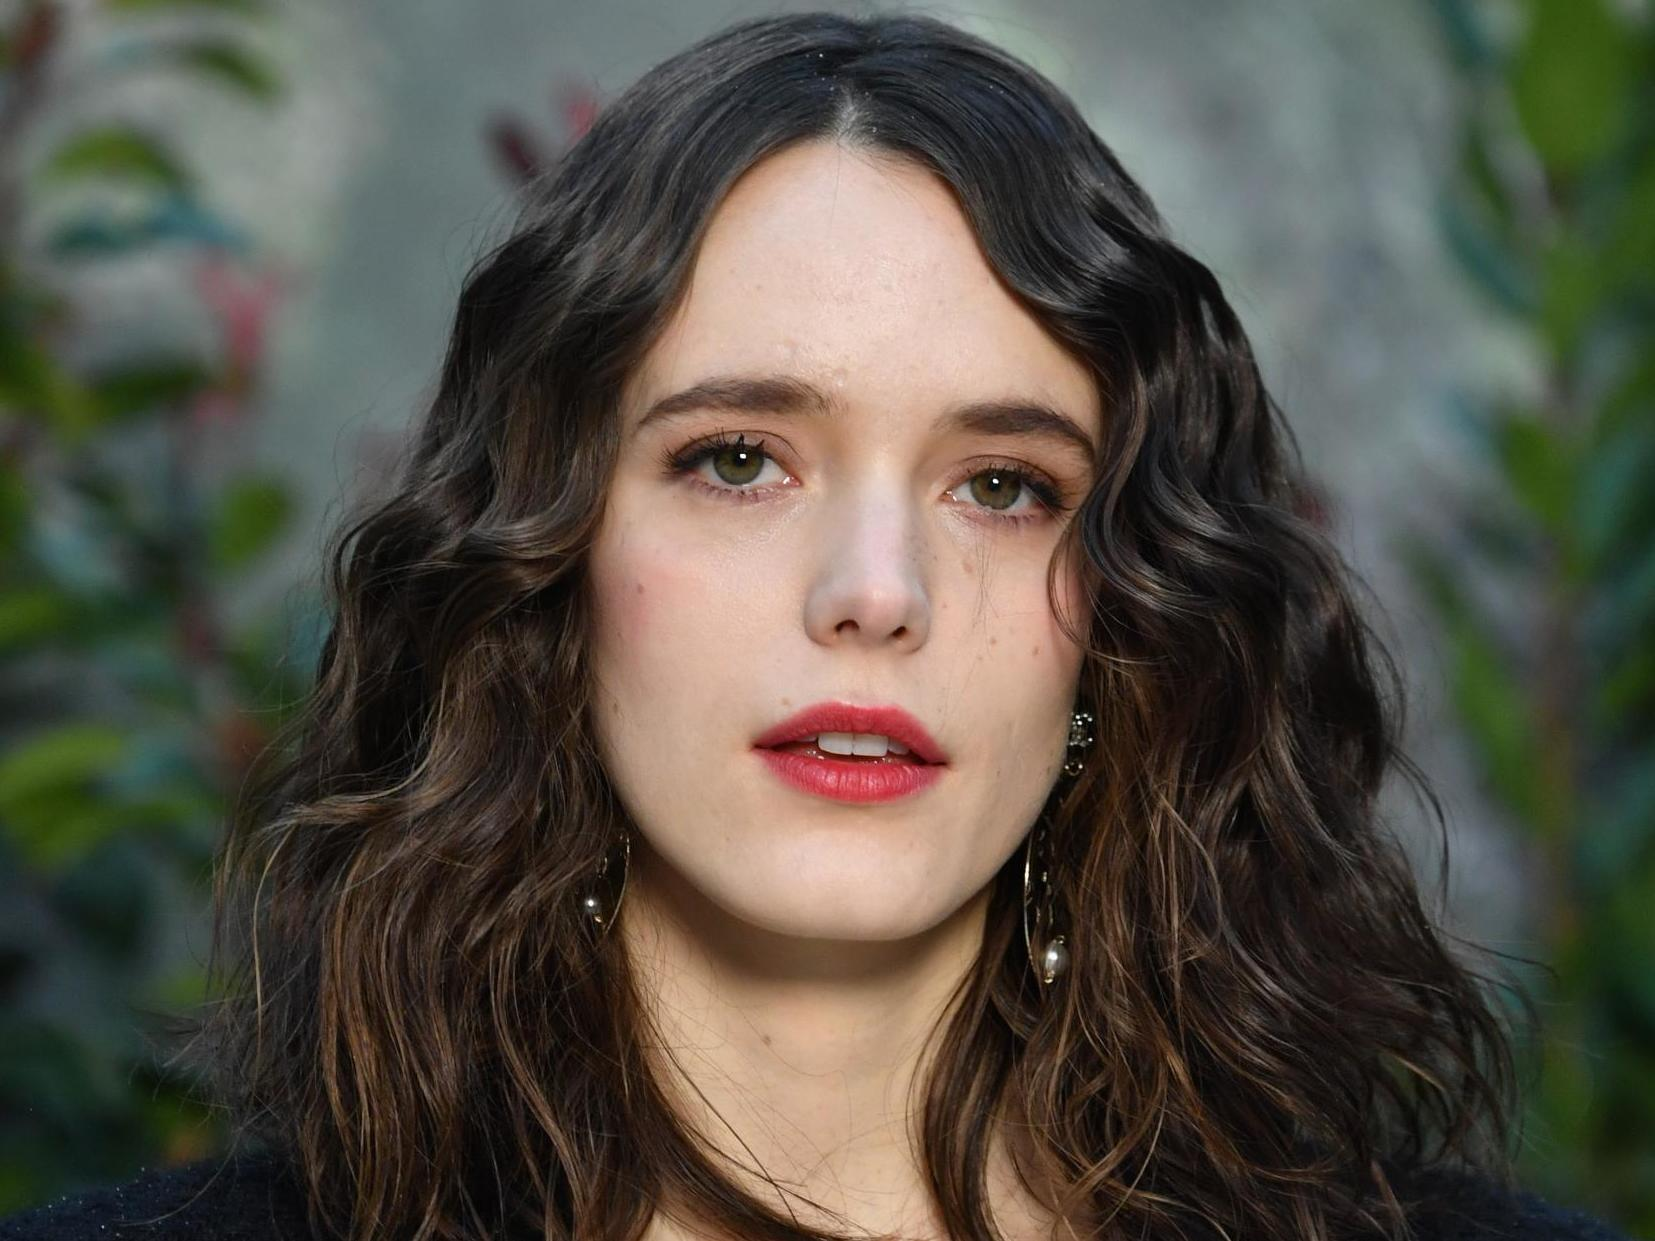 Stacy Martin interview: 'I've never been paid as much as my male counterparts. Give me more money!'